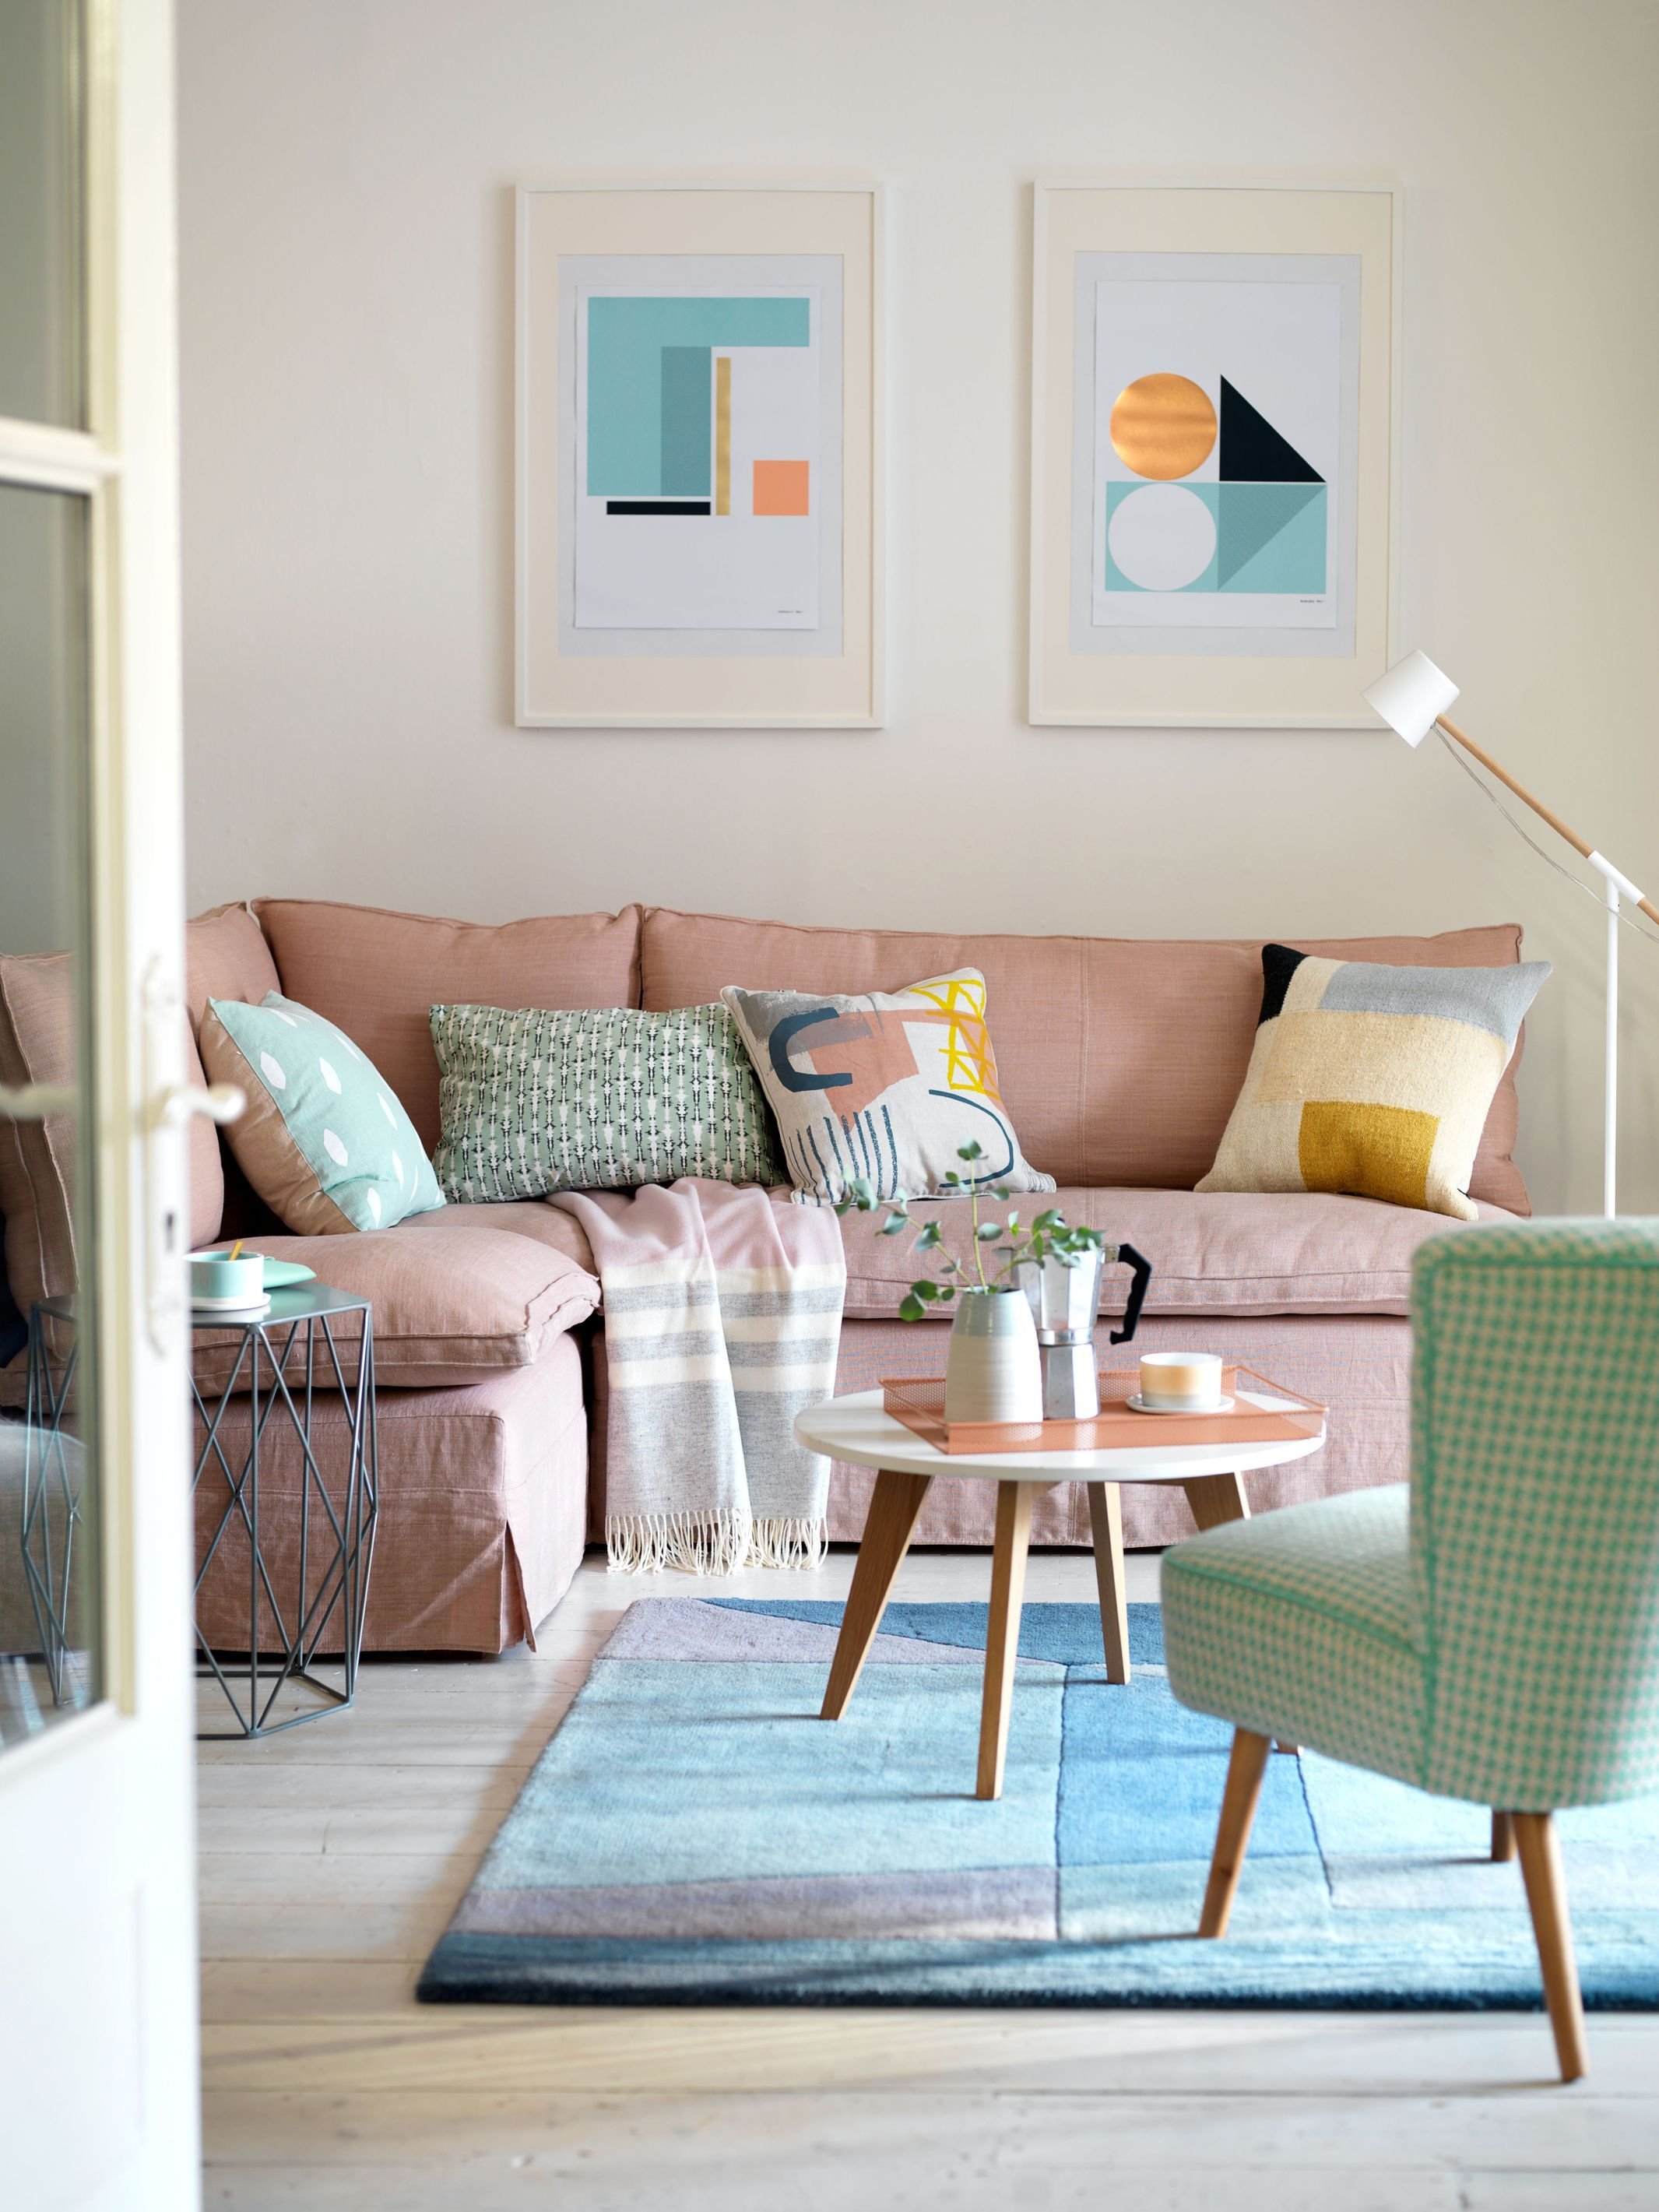 Corner Sofa In Blush Pink This Stunning Scandi Style Living Room Features Framed Geometric Prin Pastel Living Room Scandi Living Room Scandi Style Living Room